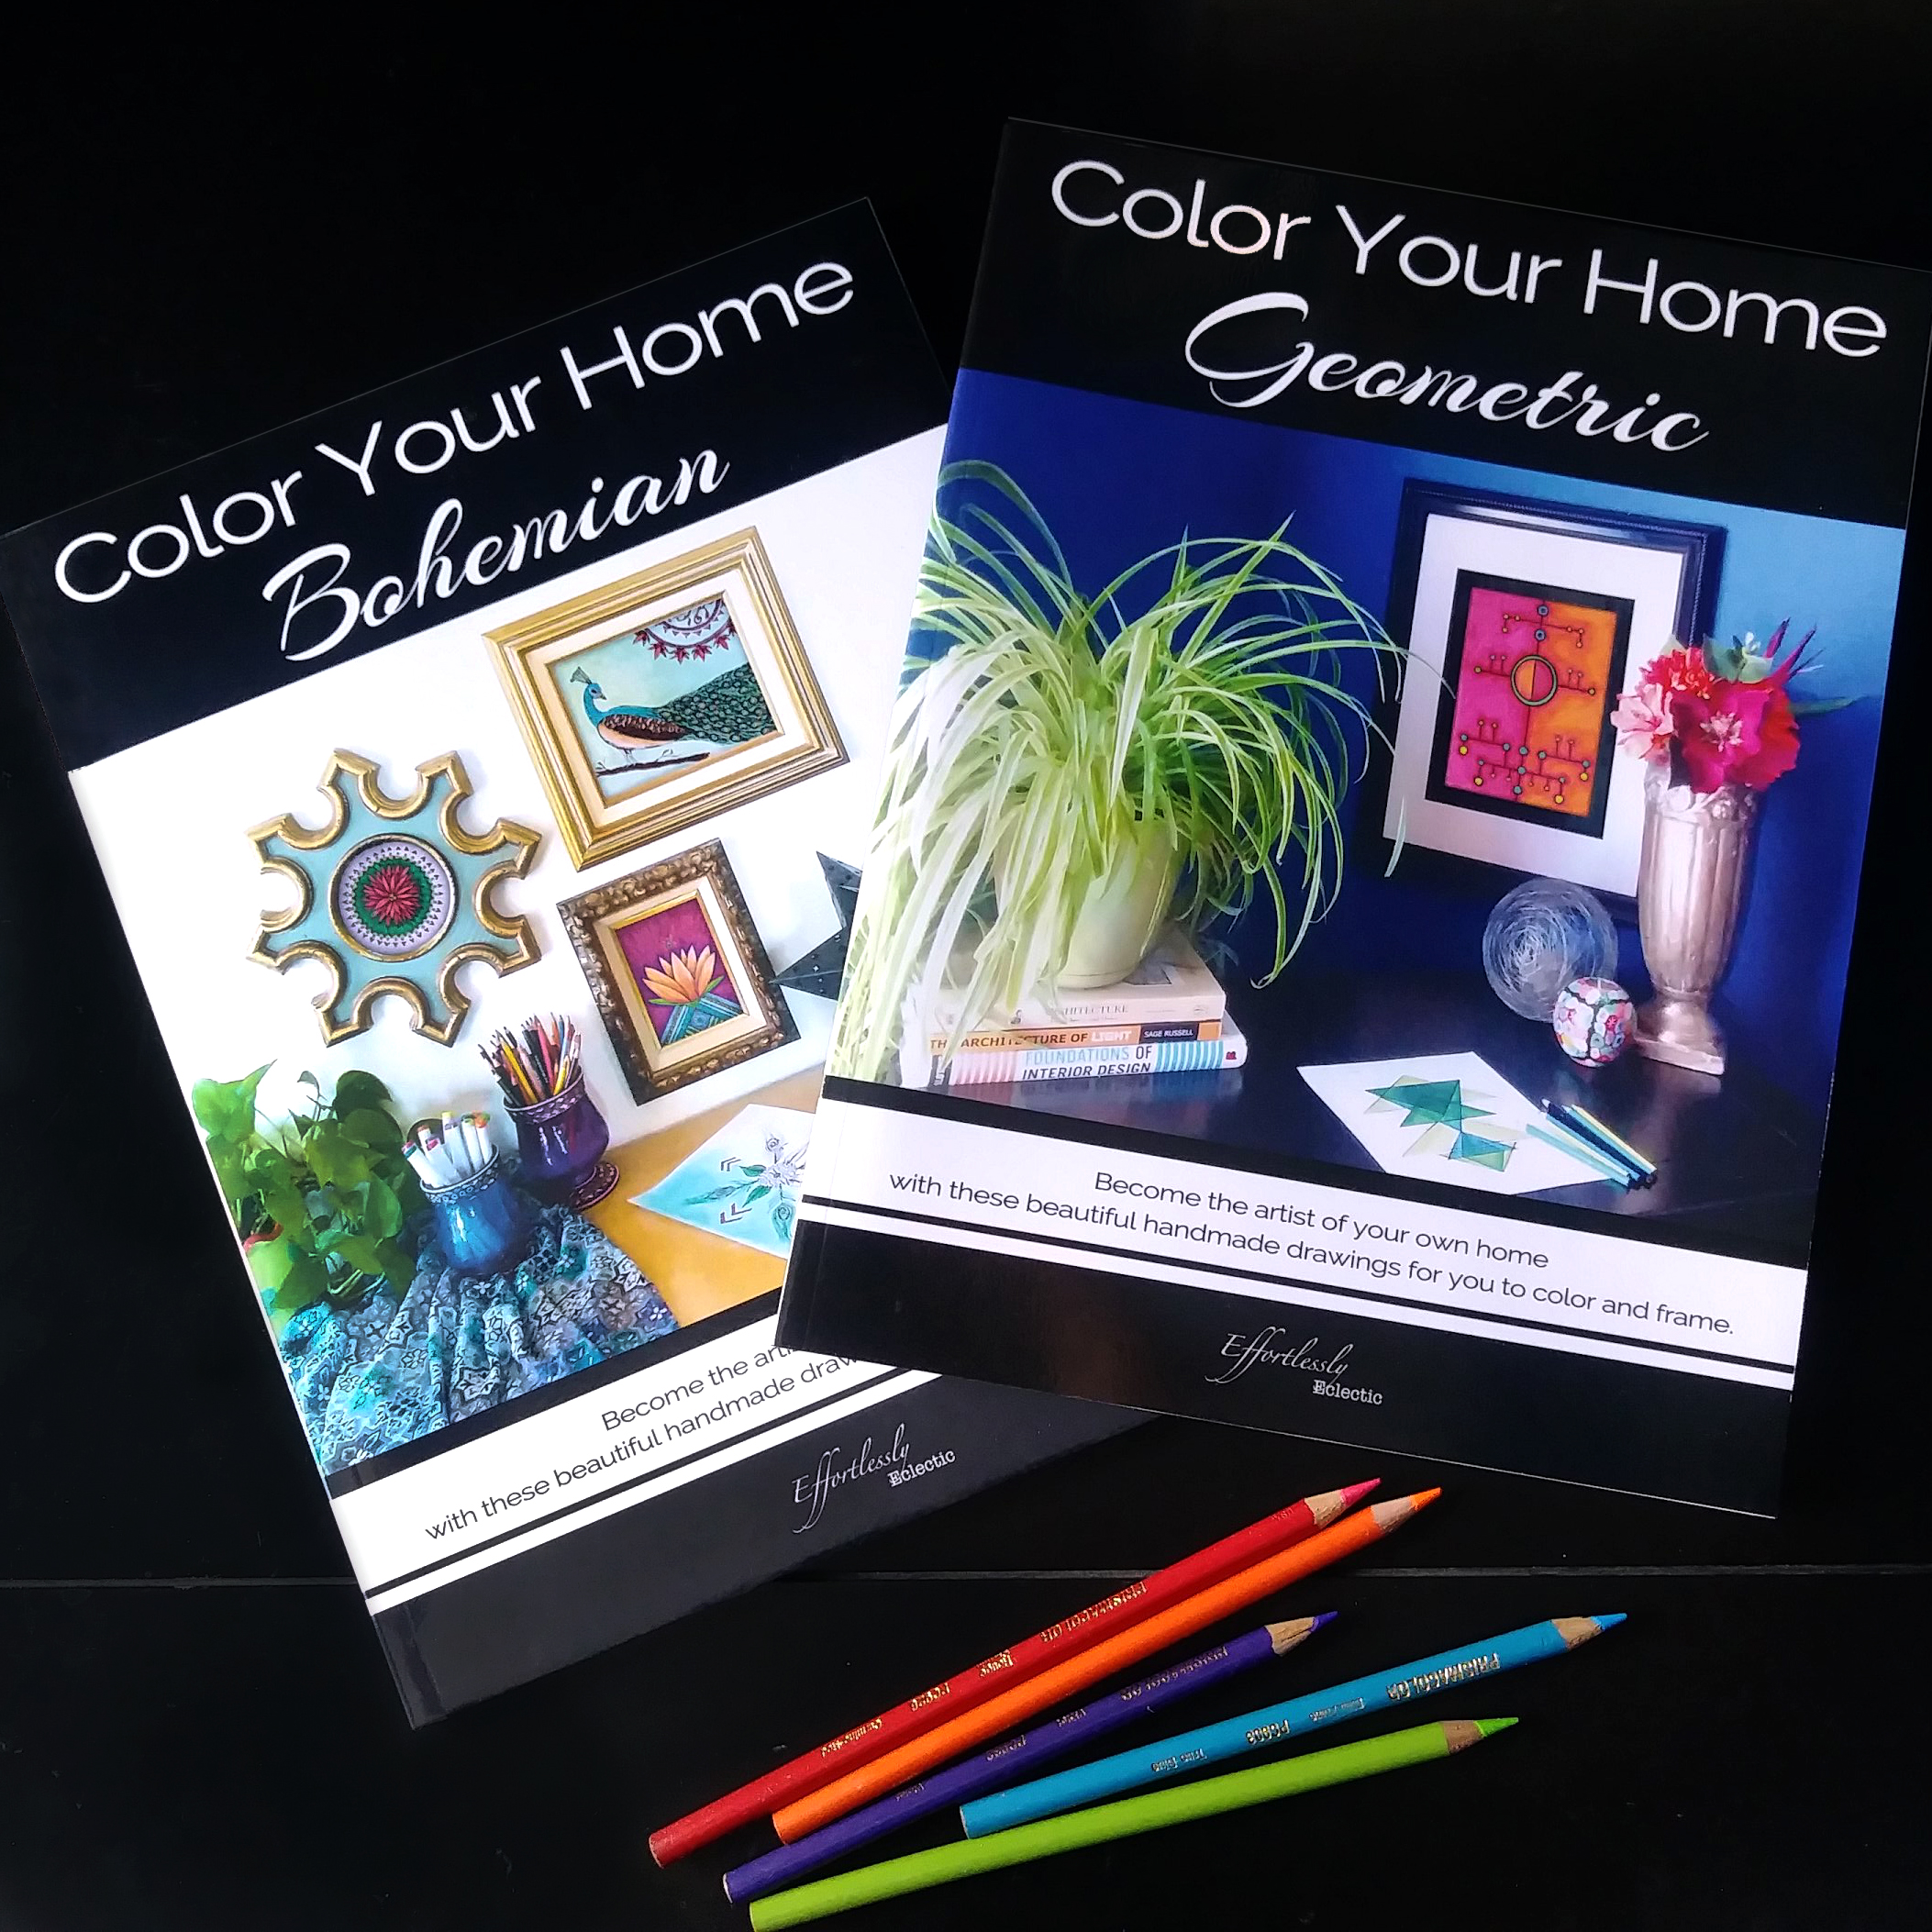 Color Your Home Bohemian and Color Your Home Geometric by Effortlessly Eclectic